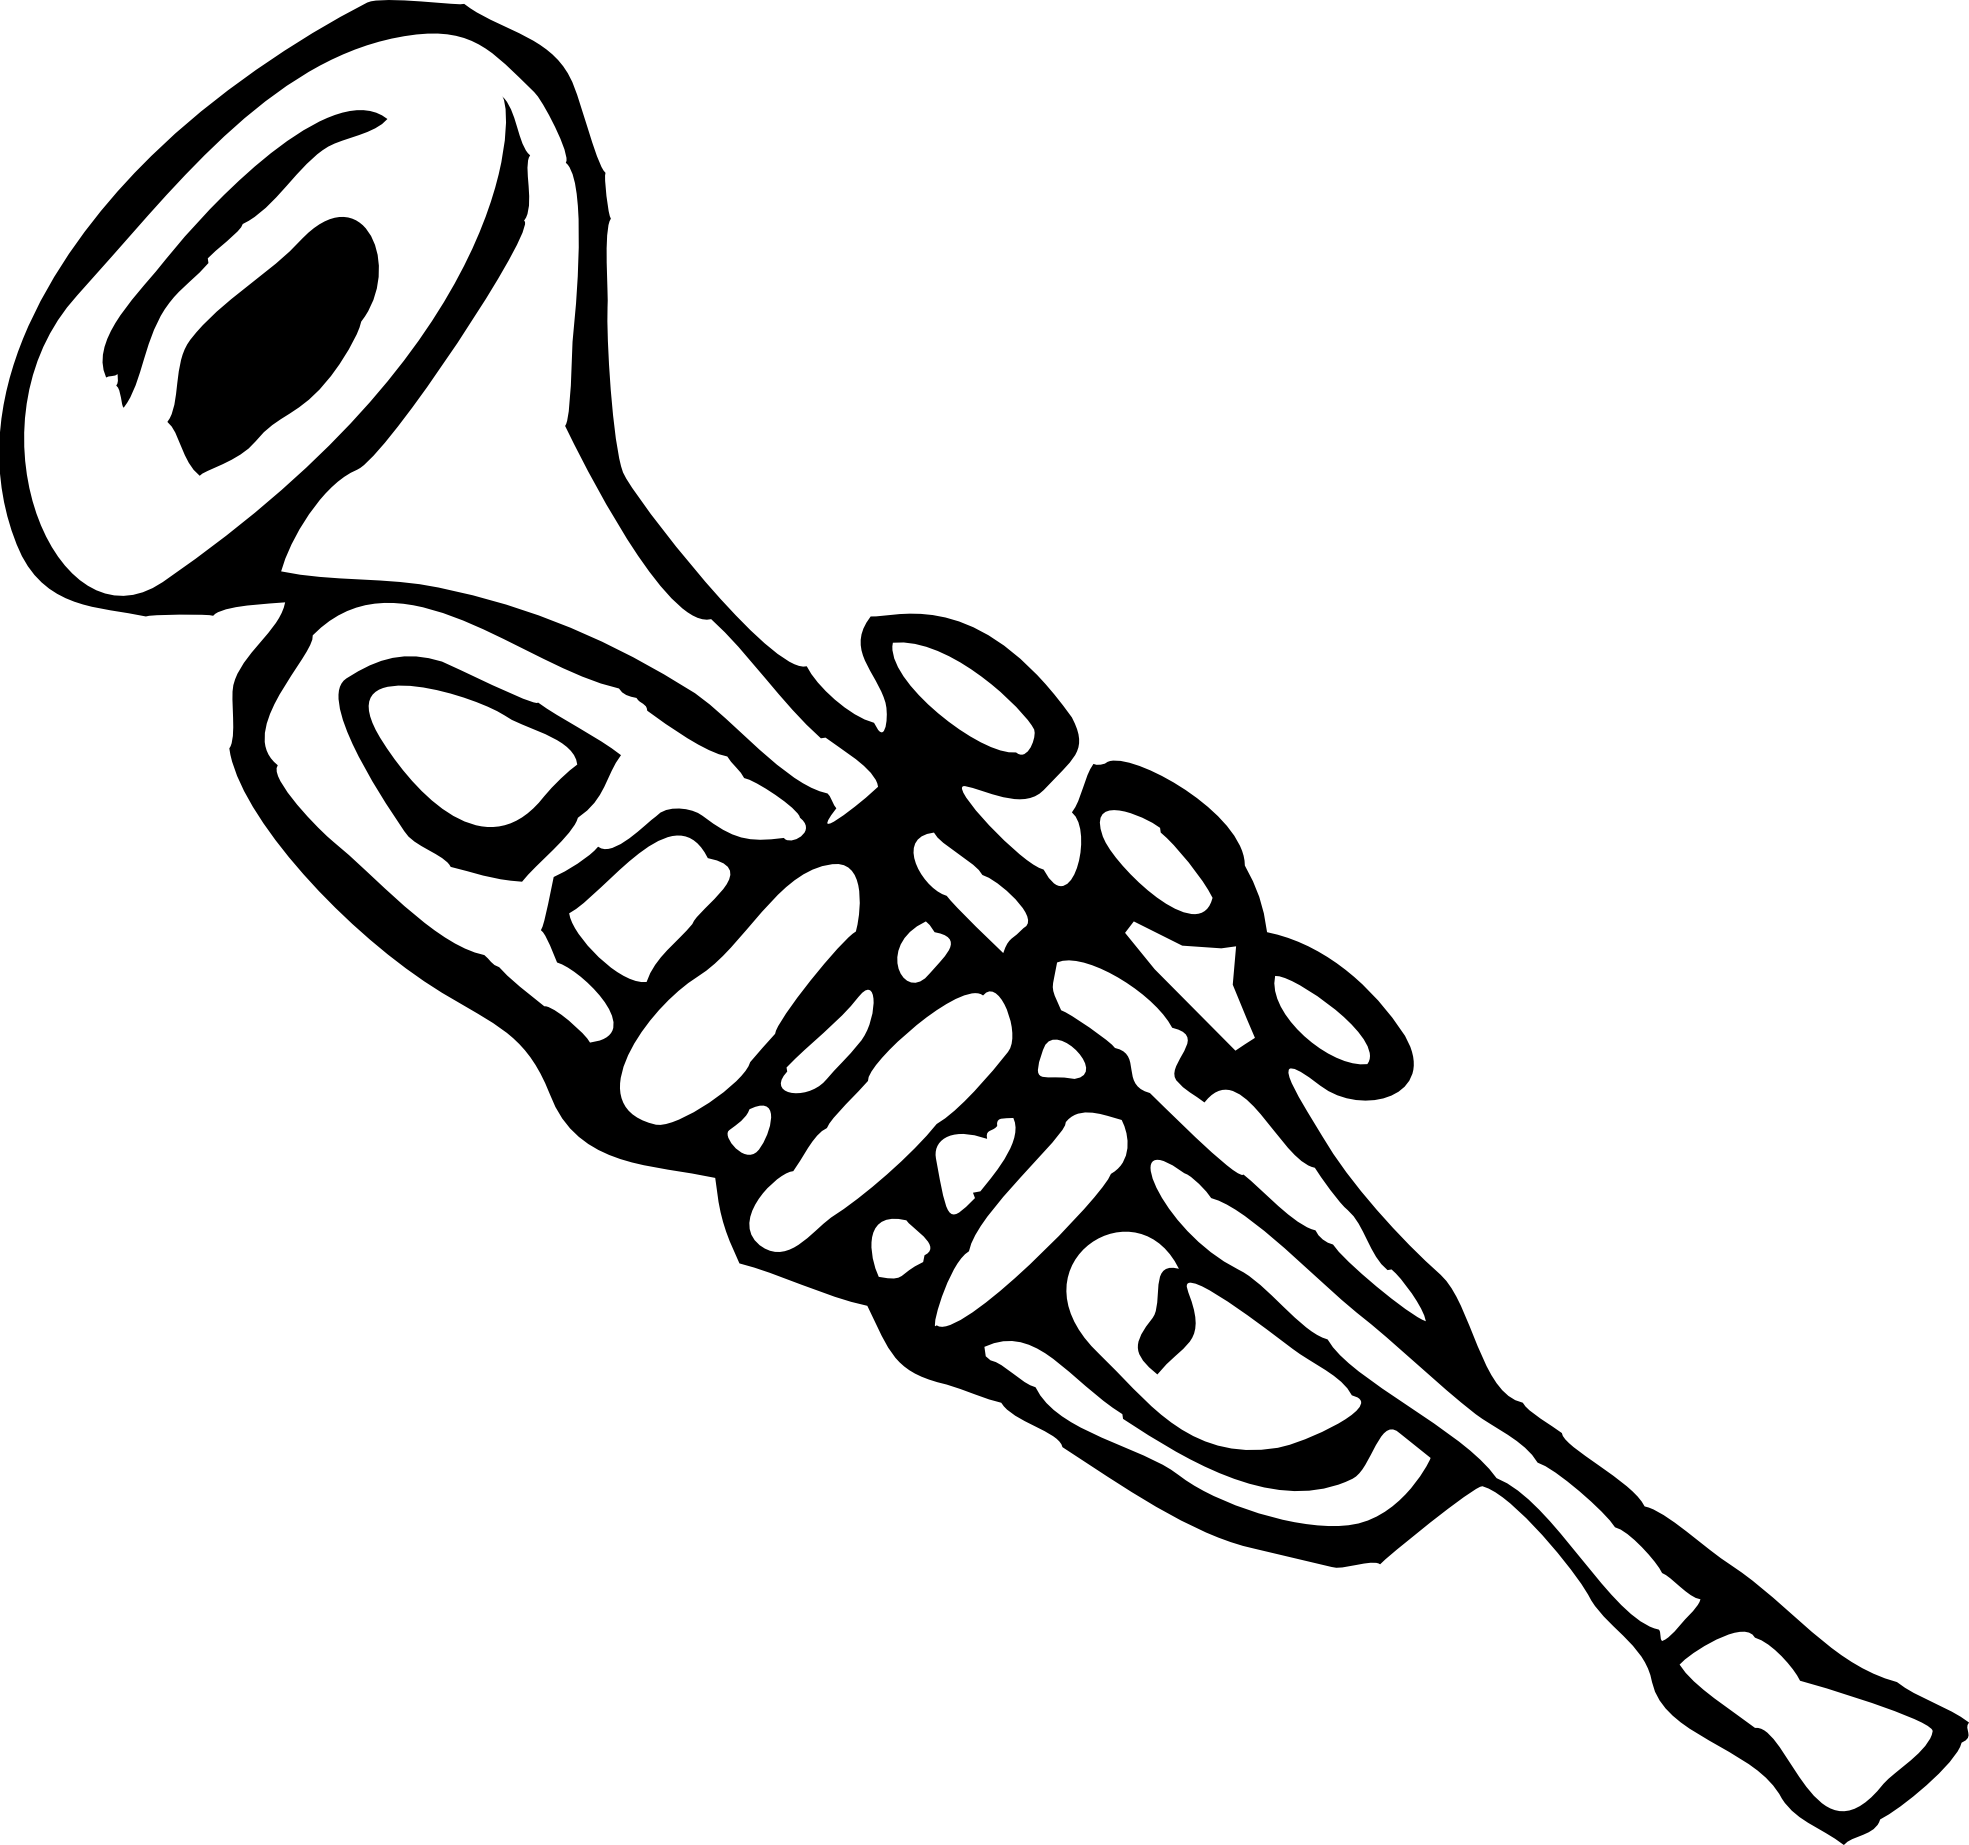 Trumpet Clip Art Trumpet 3 Black White Line Art Christmas Xmas Music